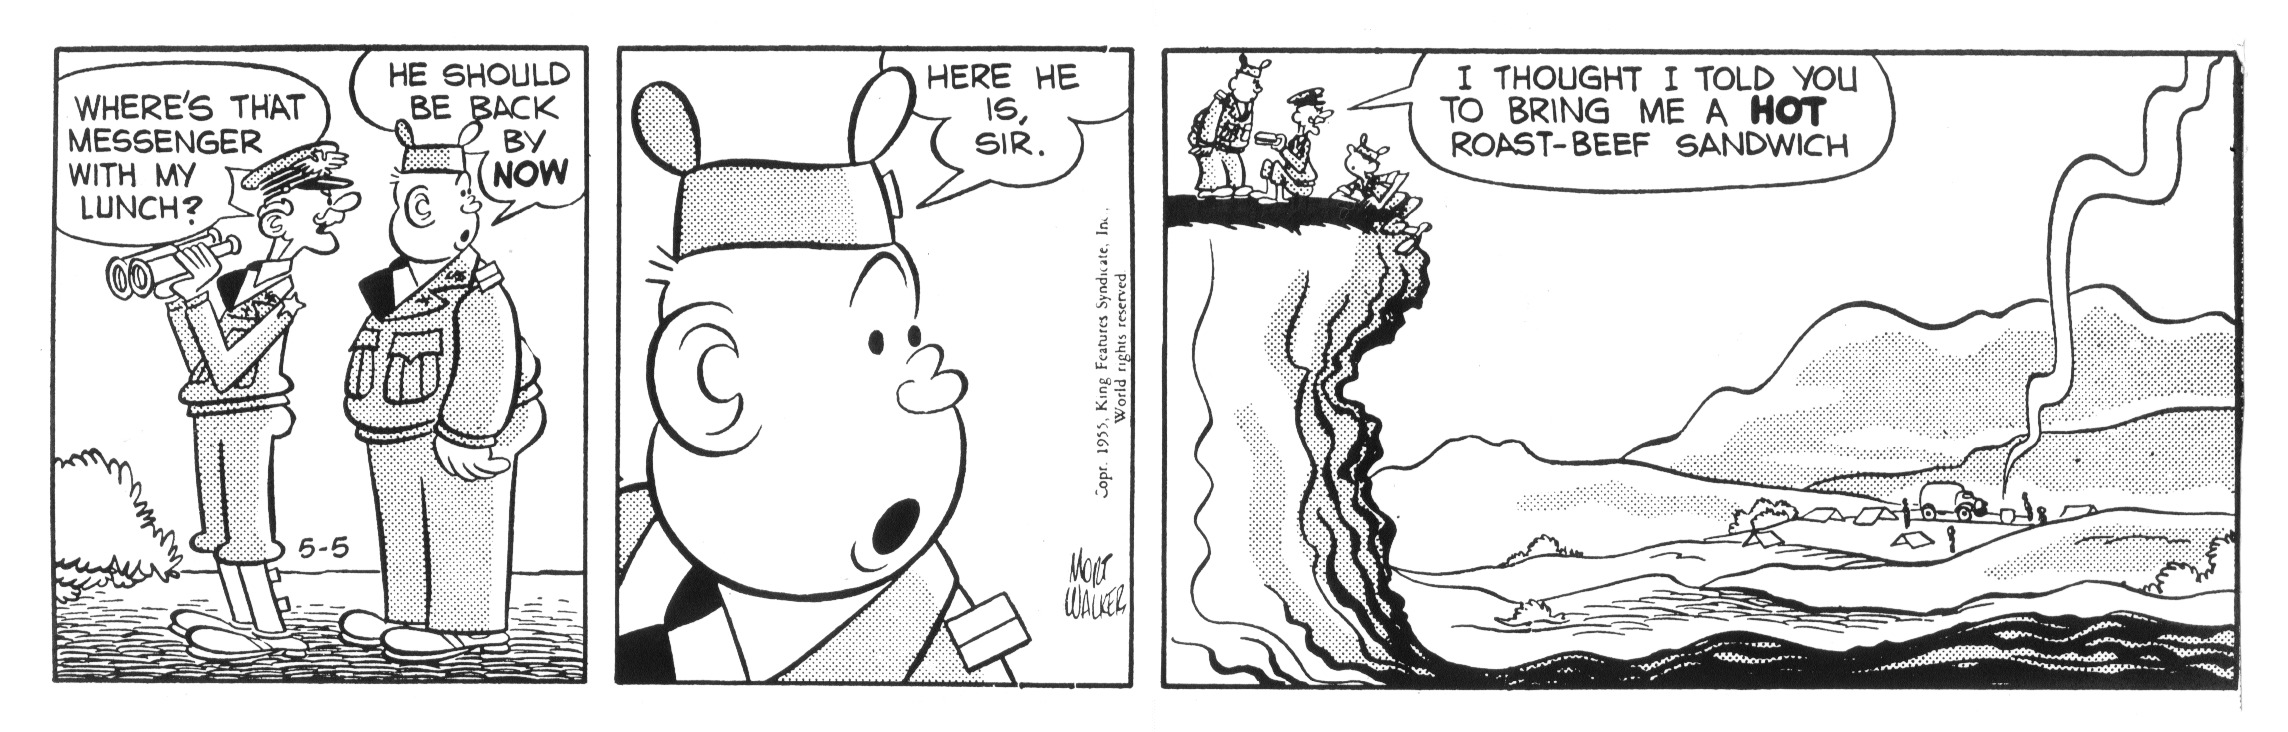 Beetle Bailey daily strip, May 5, 1955.